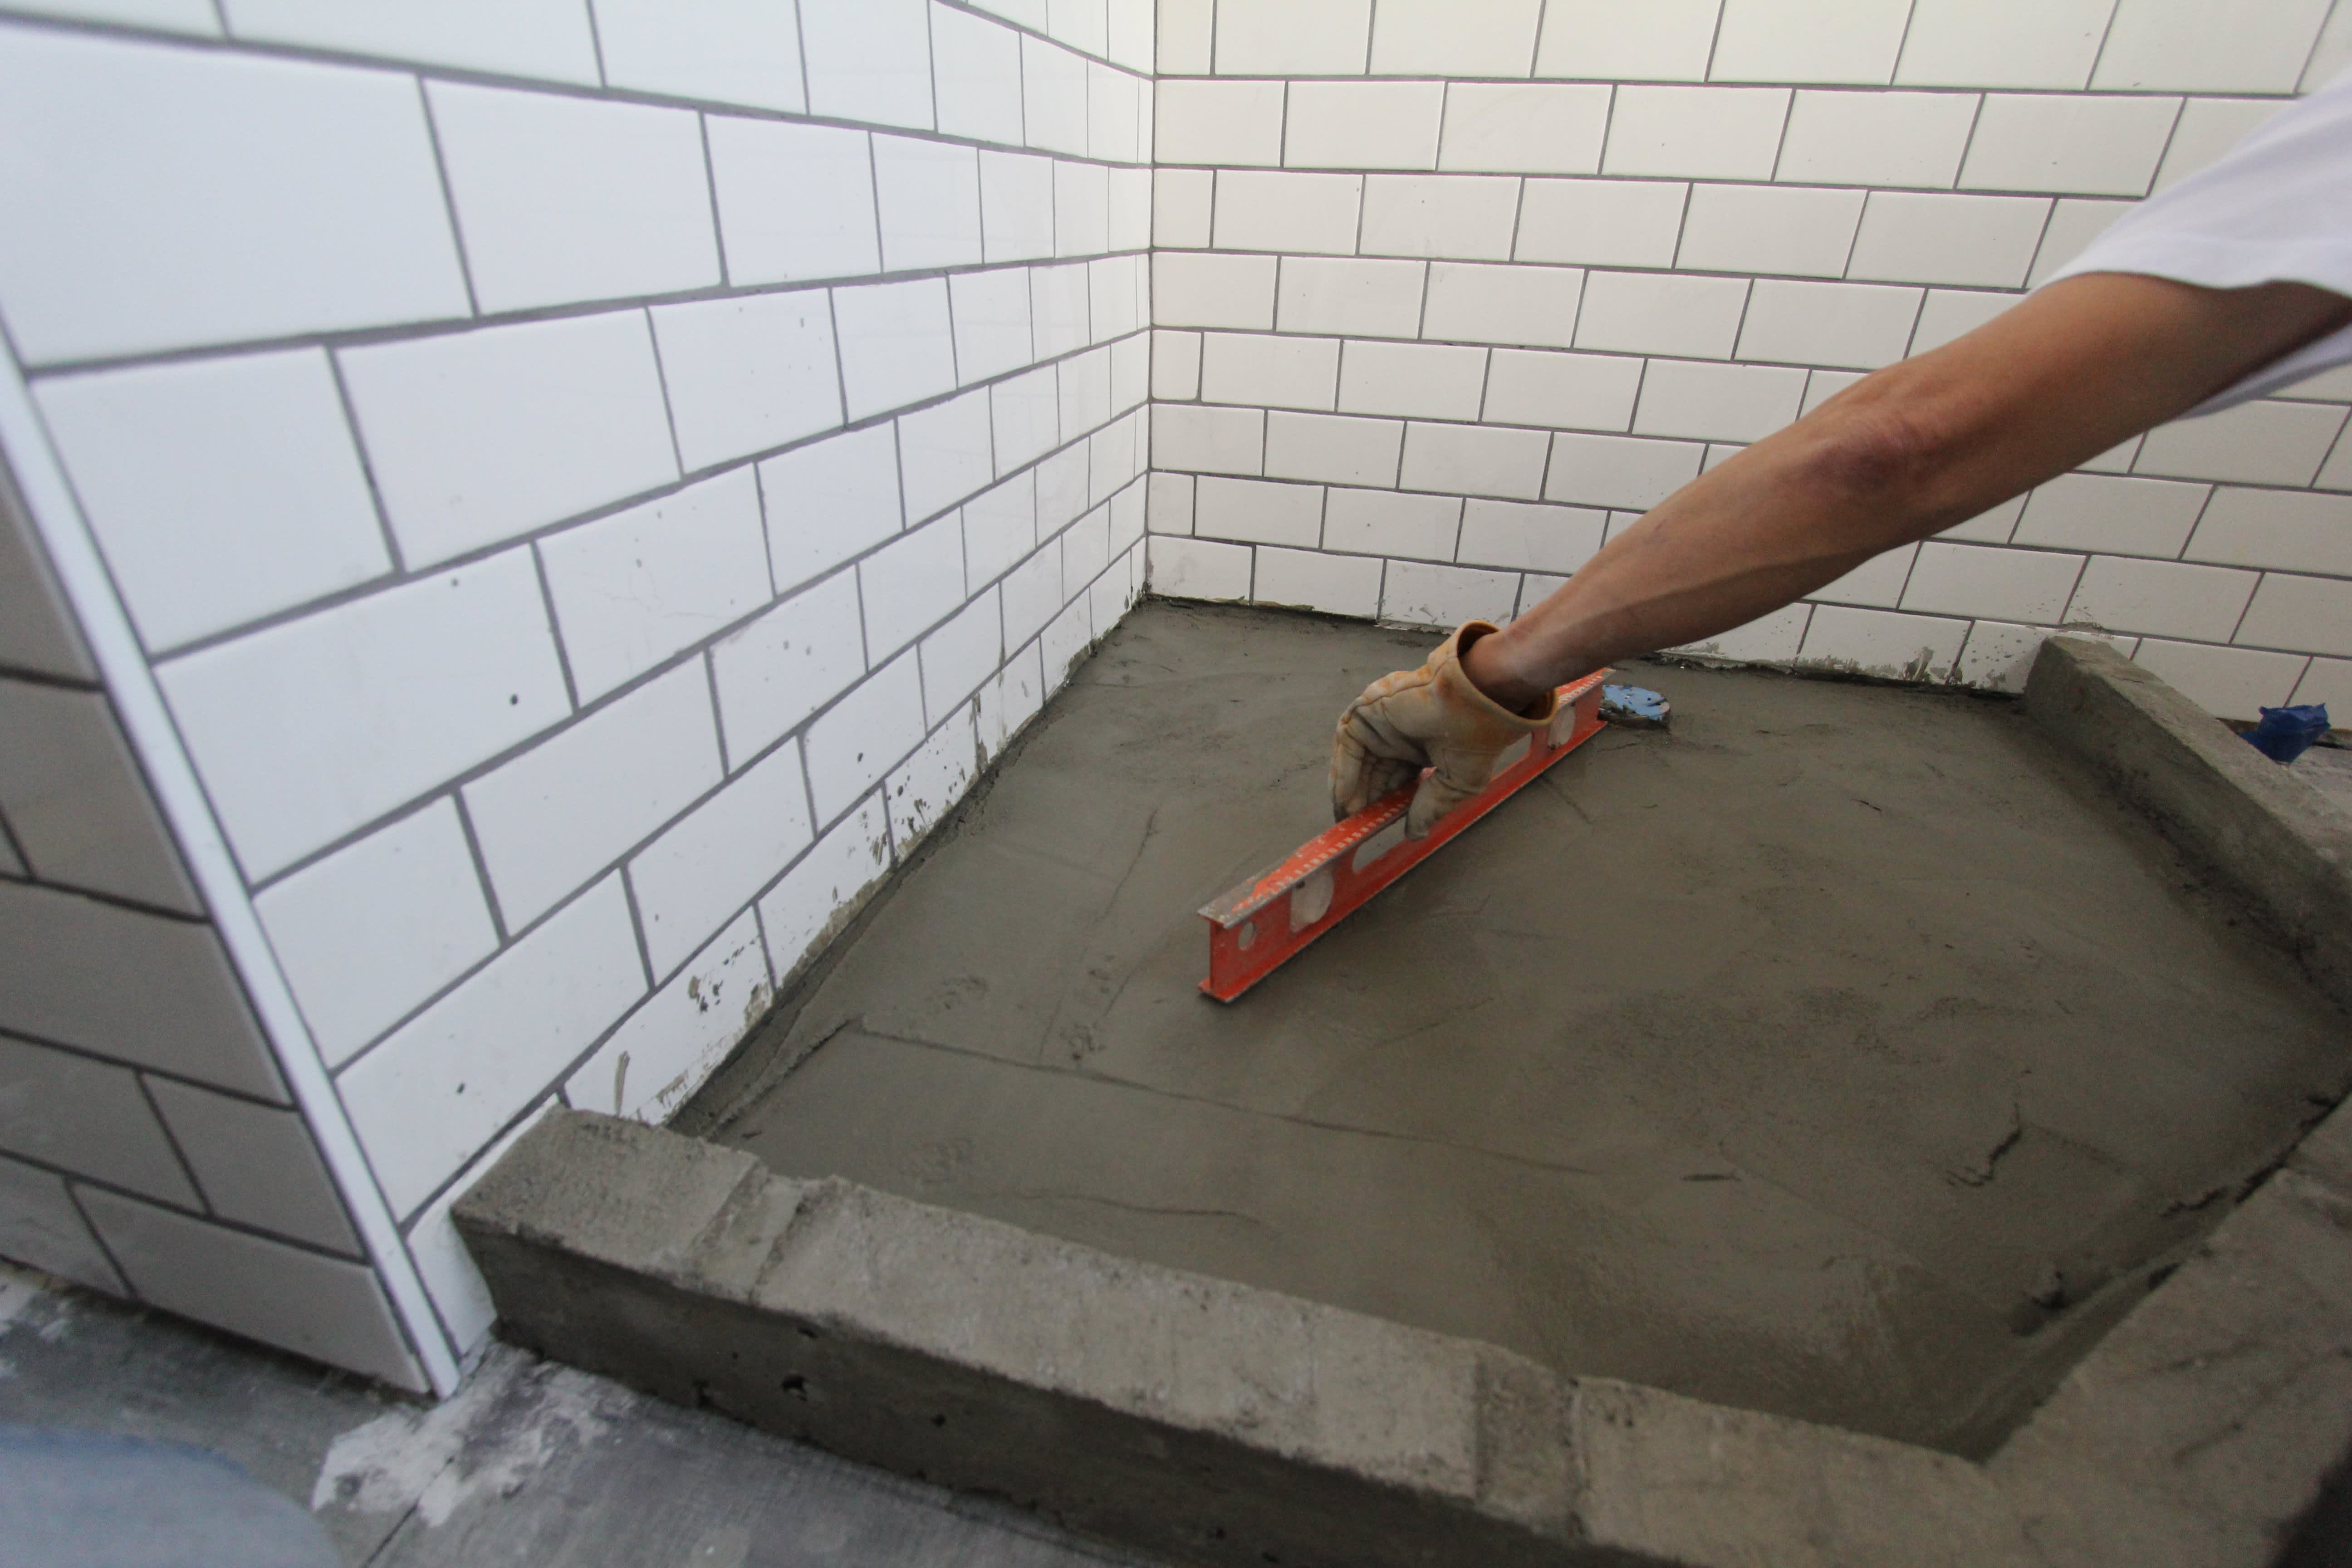 How To Build A Custom Tiled Shower Pan